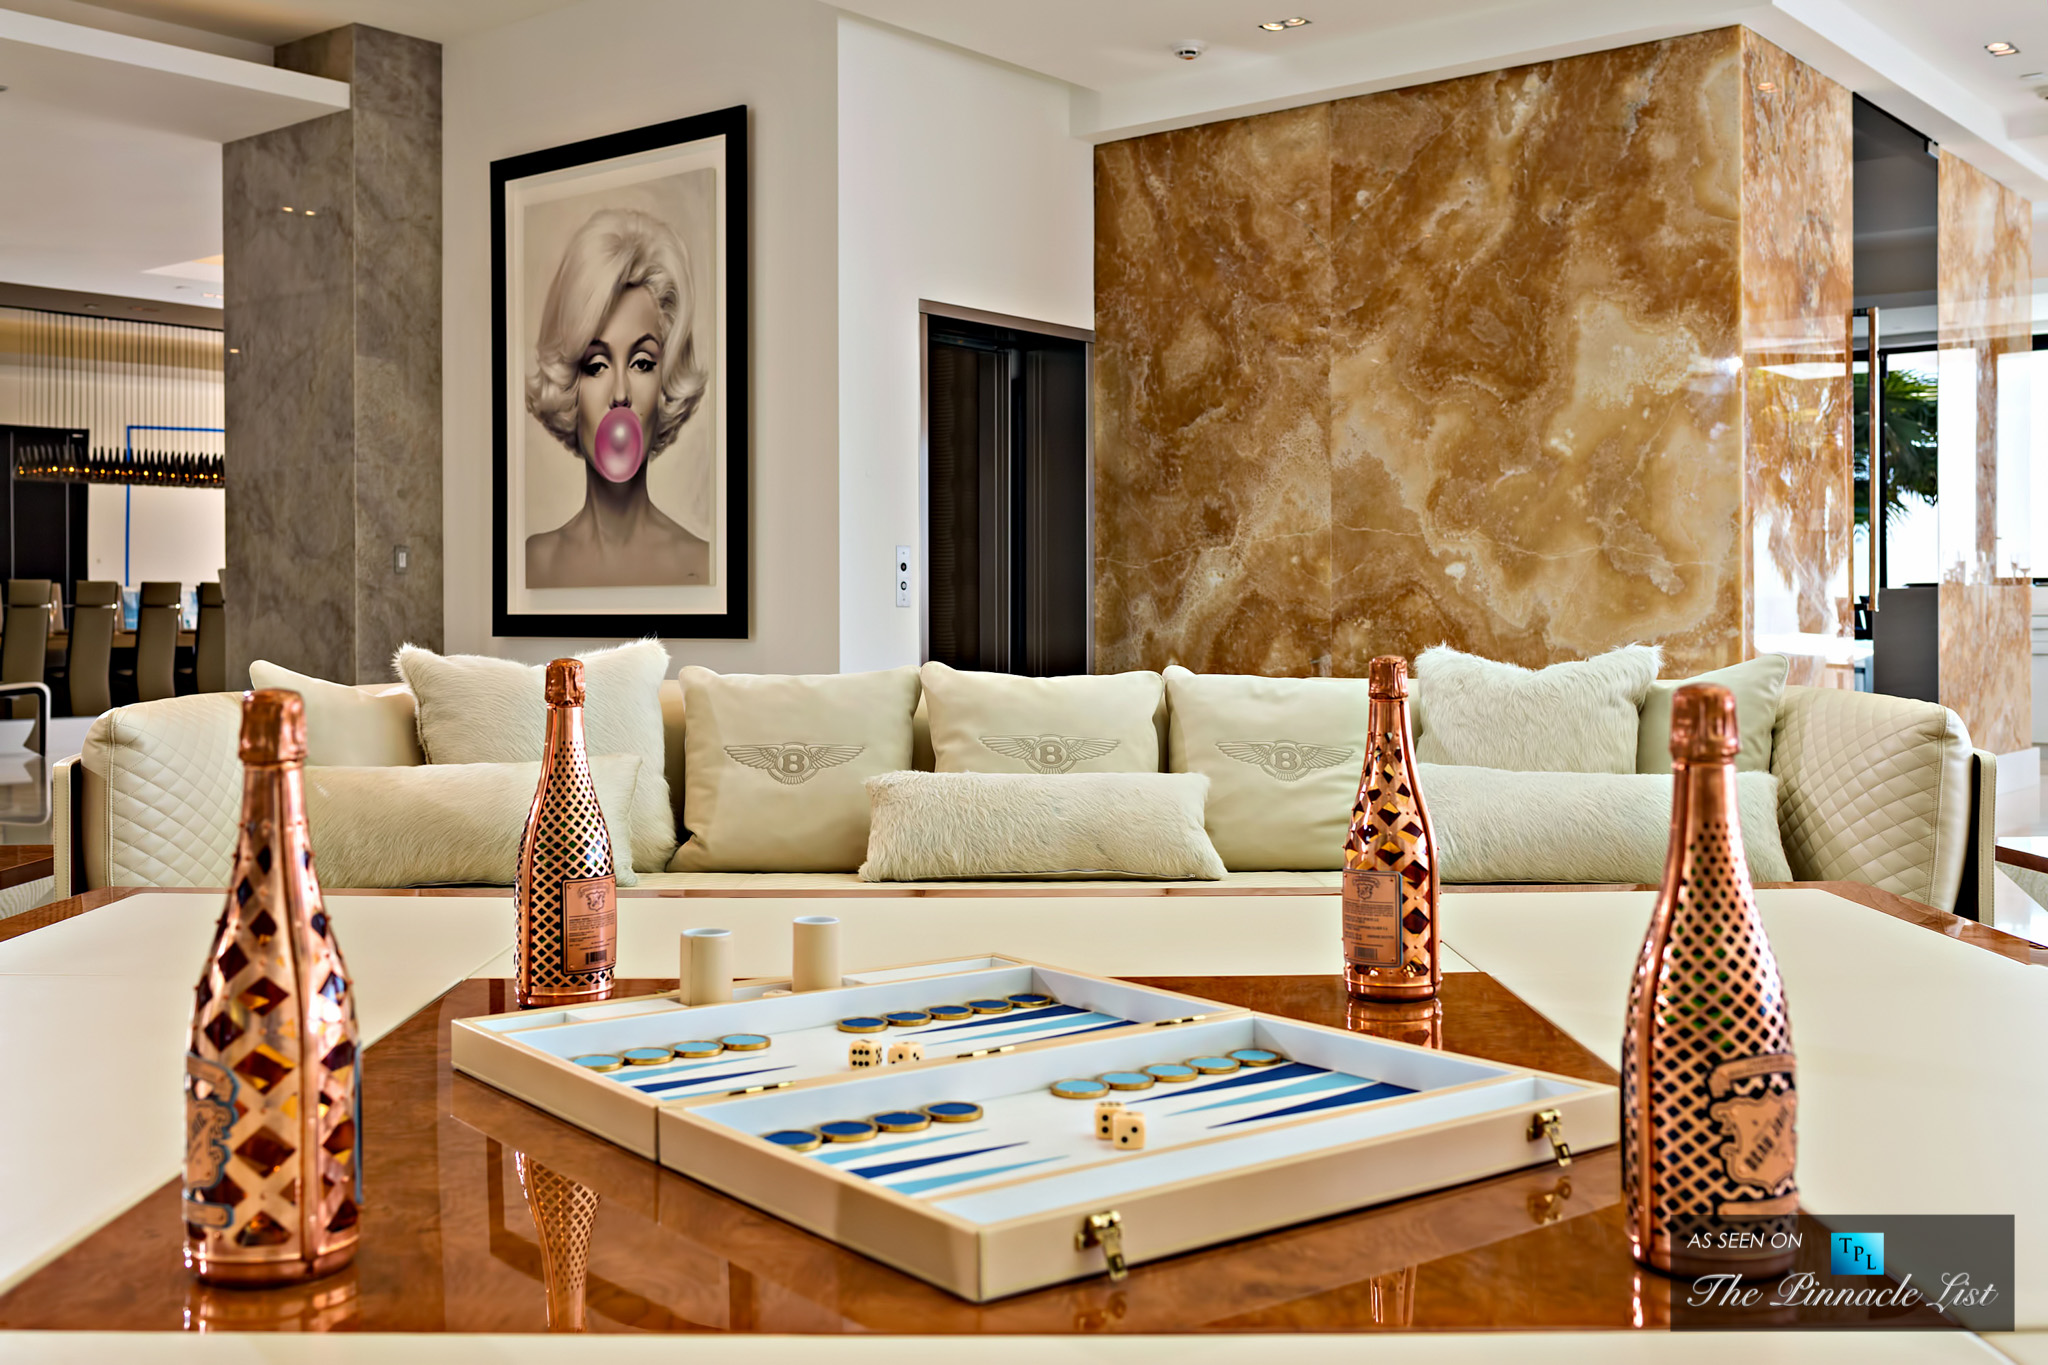 Setting the Stage - Bespoke Home Decor Becomes an Invaluable Necessity for Uber Luxury Real Estate